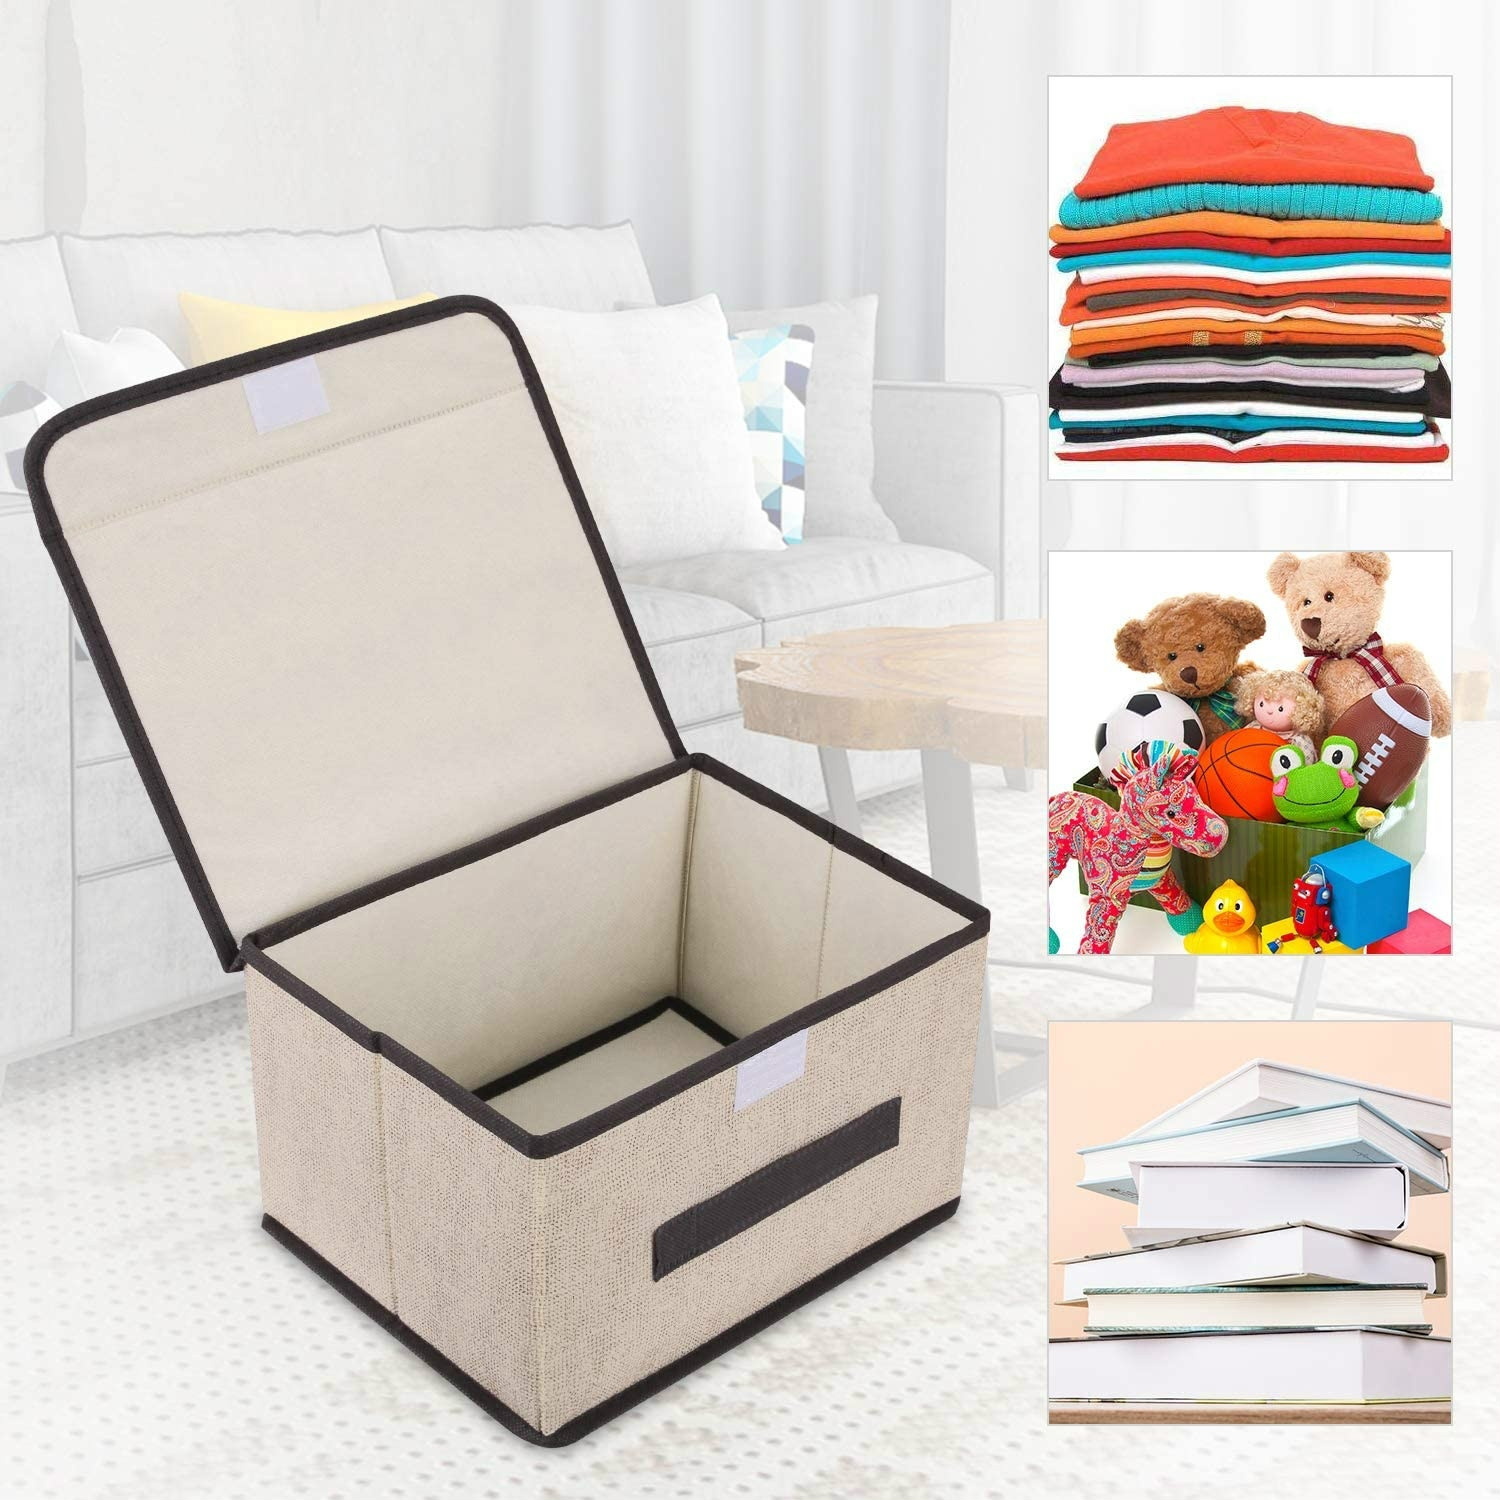 2 Pcs Storage Gift Box With Lid And Handle Foldable For Wardrobe Clothes Books Cosmetics Toy Organizer Housekeeping Organization